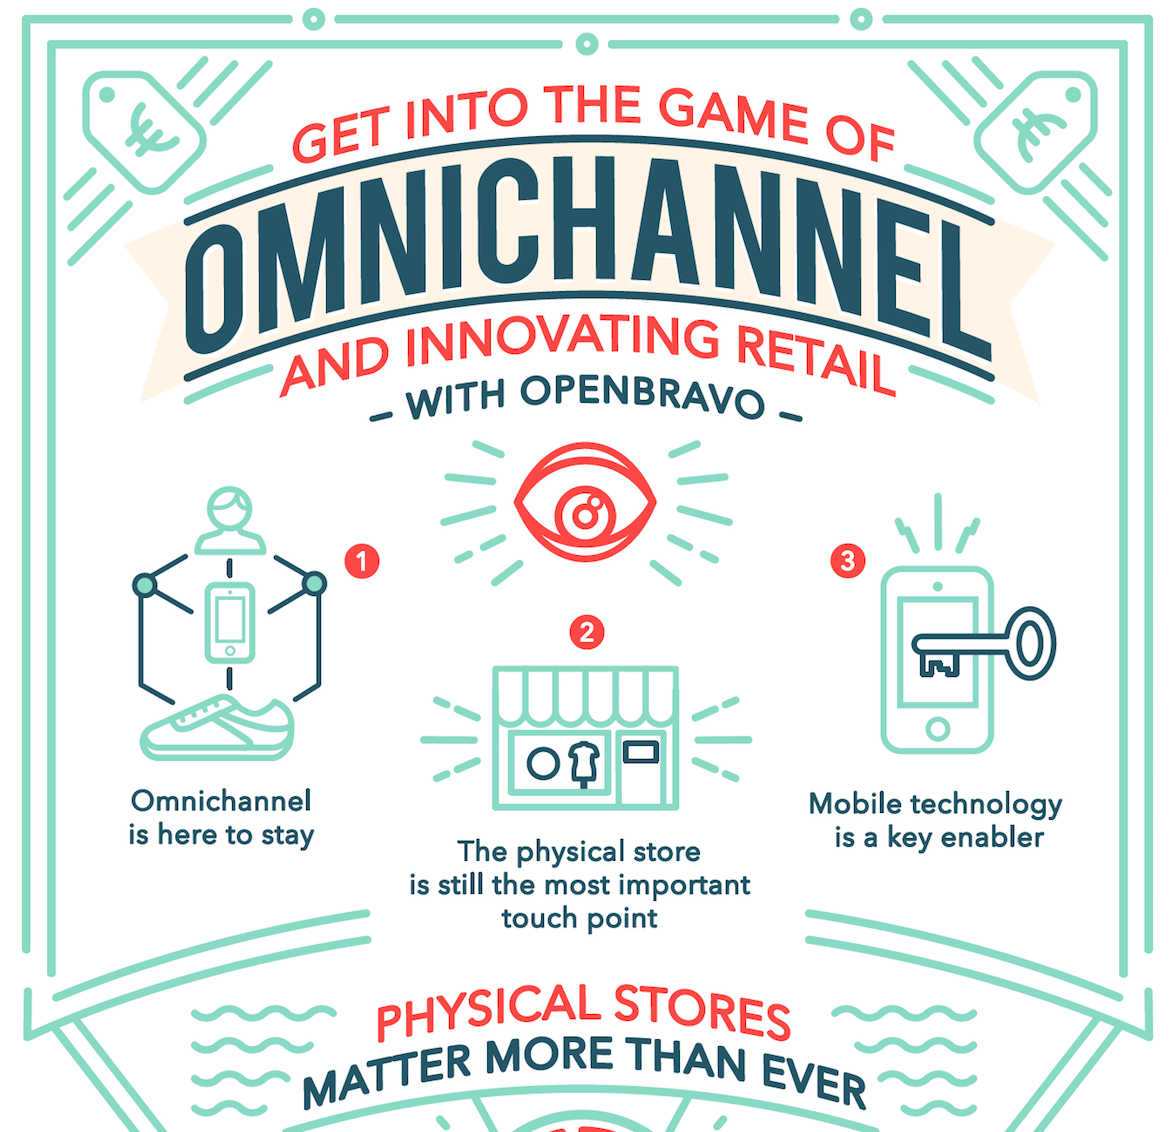 Infographic-Get into the game of omnichannel.png